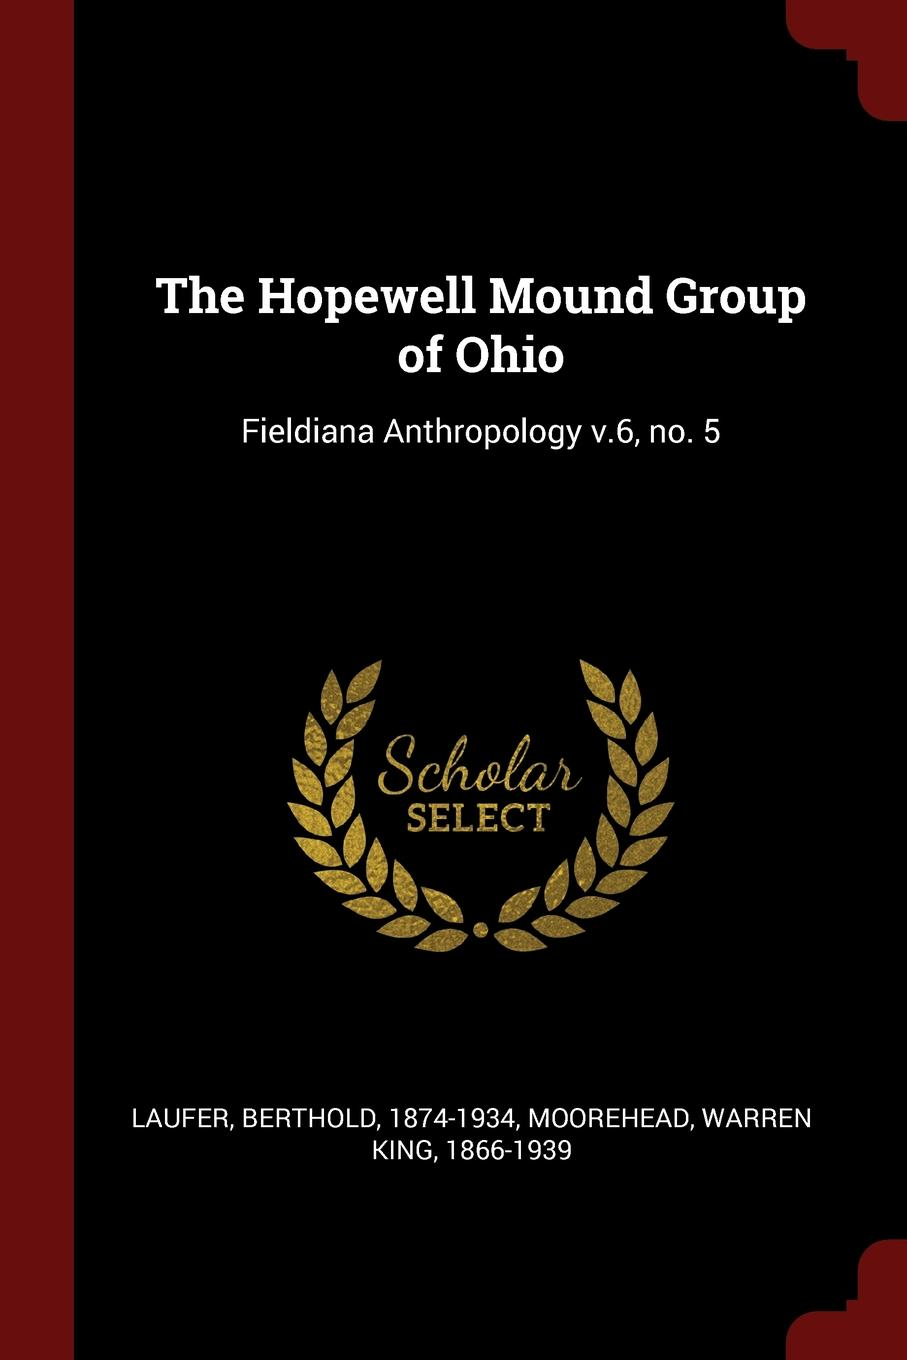 Berthold Laufer, Warren King Moorehead The Hopewell Mound Group of Ohio. Fieldiana Anthropology v.6, no. 5